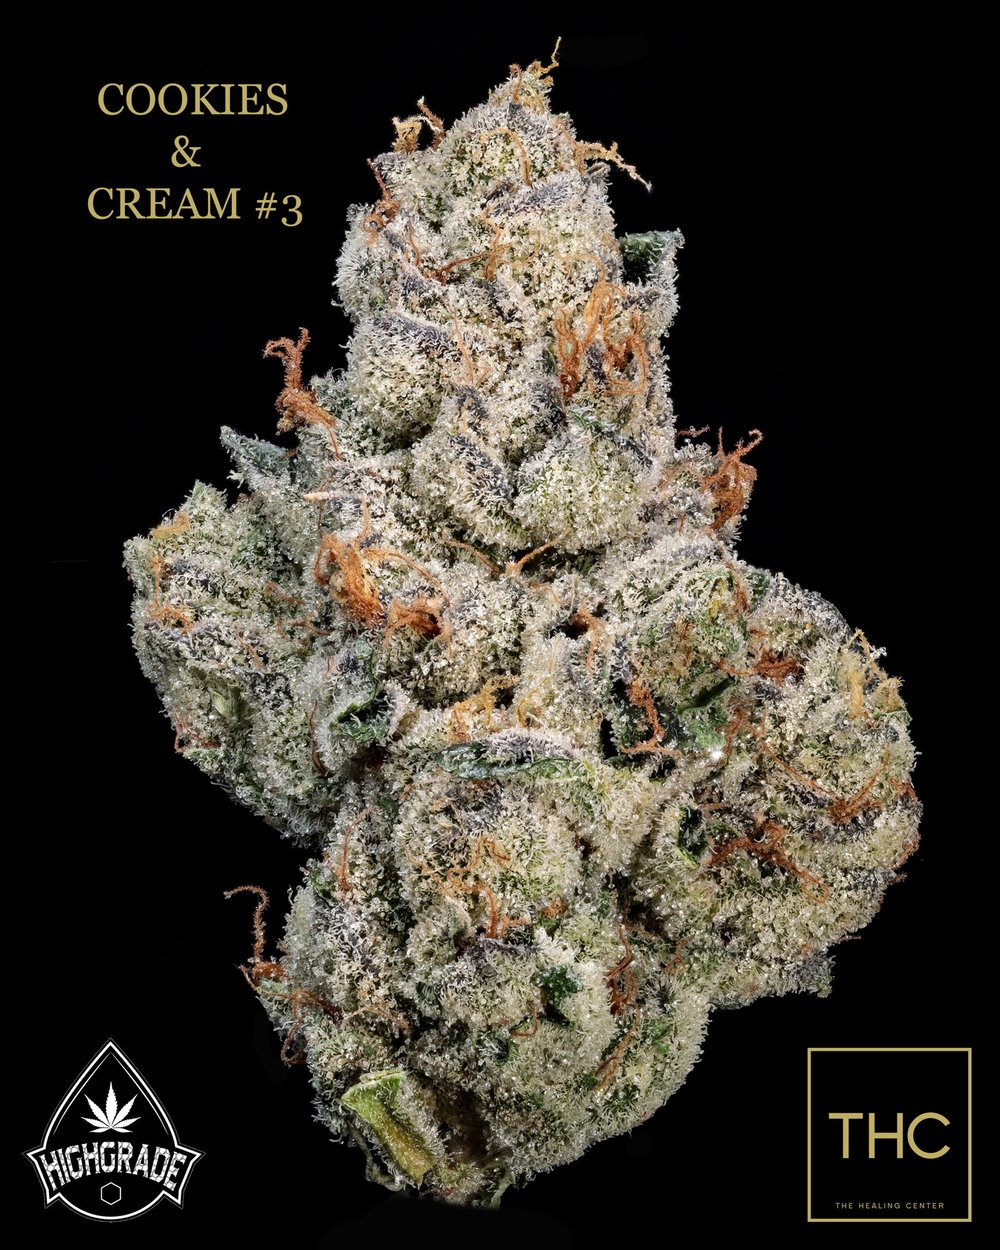 Cookies & Cream 3 Highgrade 2018 THC.jpg